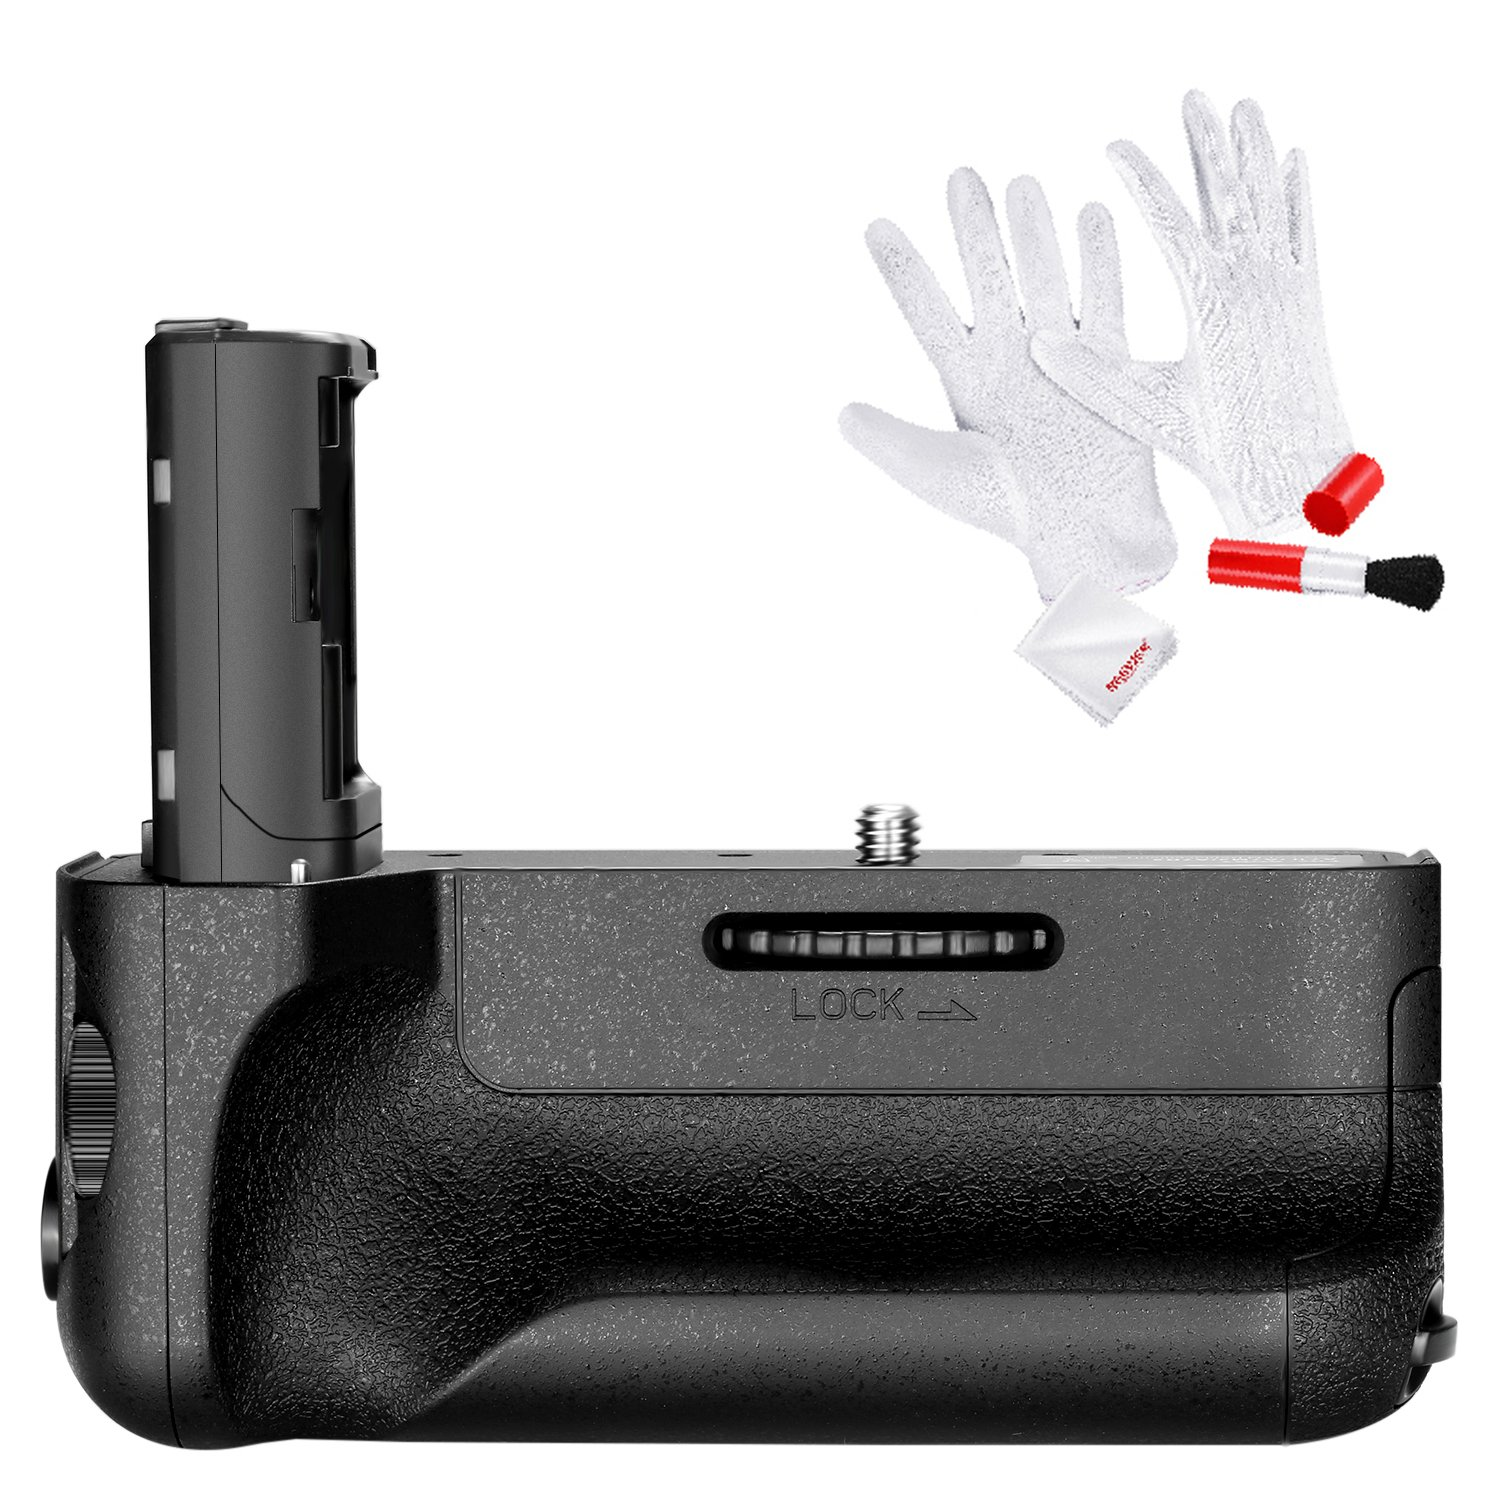 Neewer VG-C2EM Replacement Vertical Battery Grip, Works with NP-FW50 Battery for SONY A7 II and A7R II Cameras, Includes 3-In-1 Cleaning Kit (Anti-static Gloves, Lens Brush, Microfiber Cleaning Cloth) by Neewer